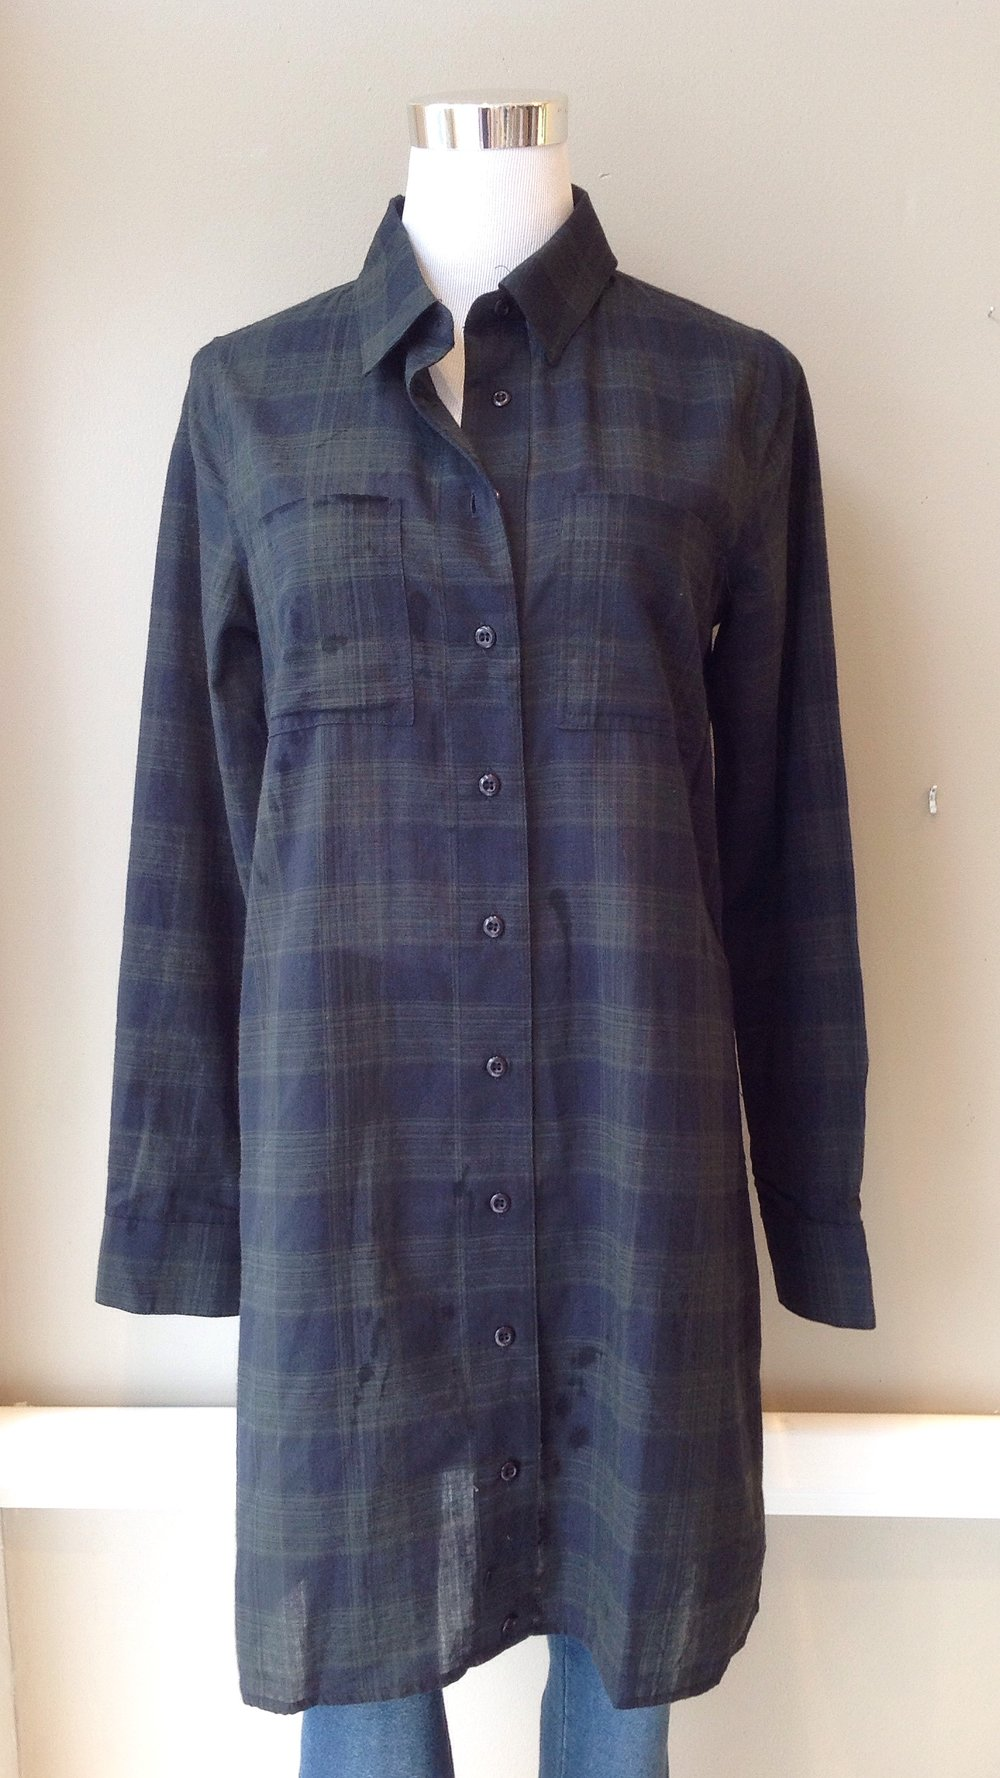 Long cotton plaid shirt in hunter/slate, $45